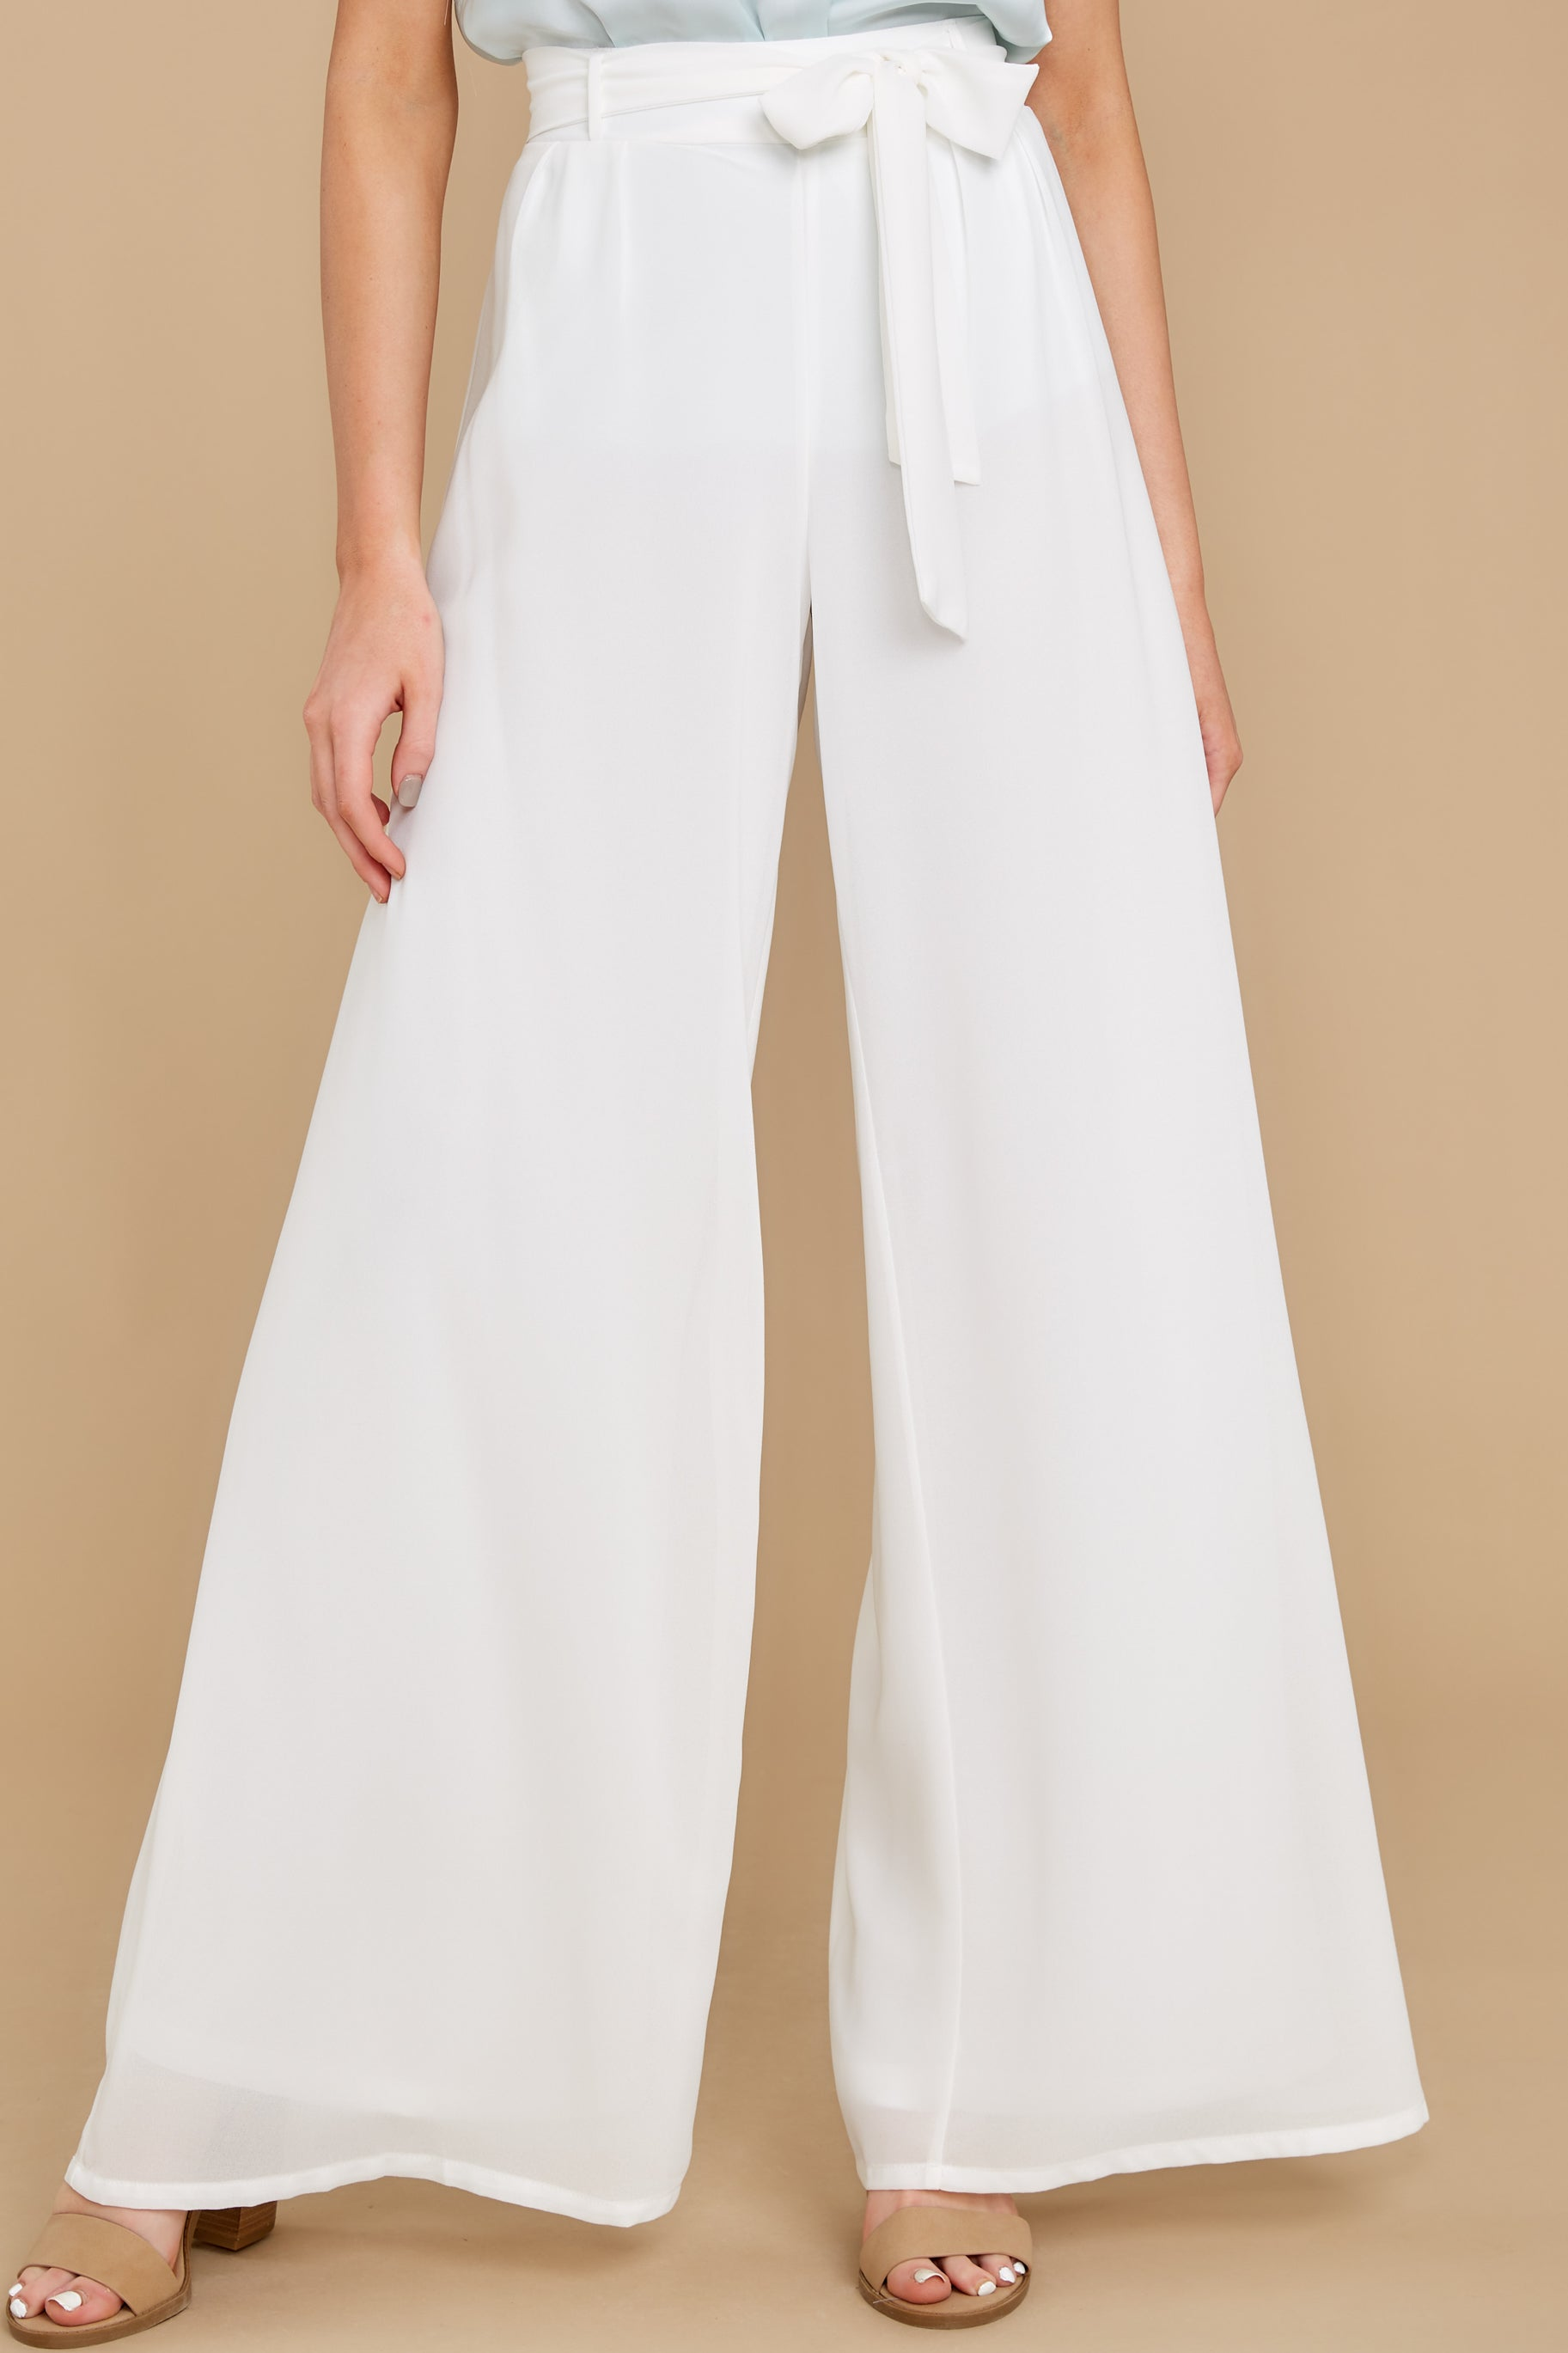 1920s Style Women's Pants, Trousers, Knickers, Tuxedo Goal Getter Ivory Pants $36.00 AT vintagedancer.com